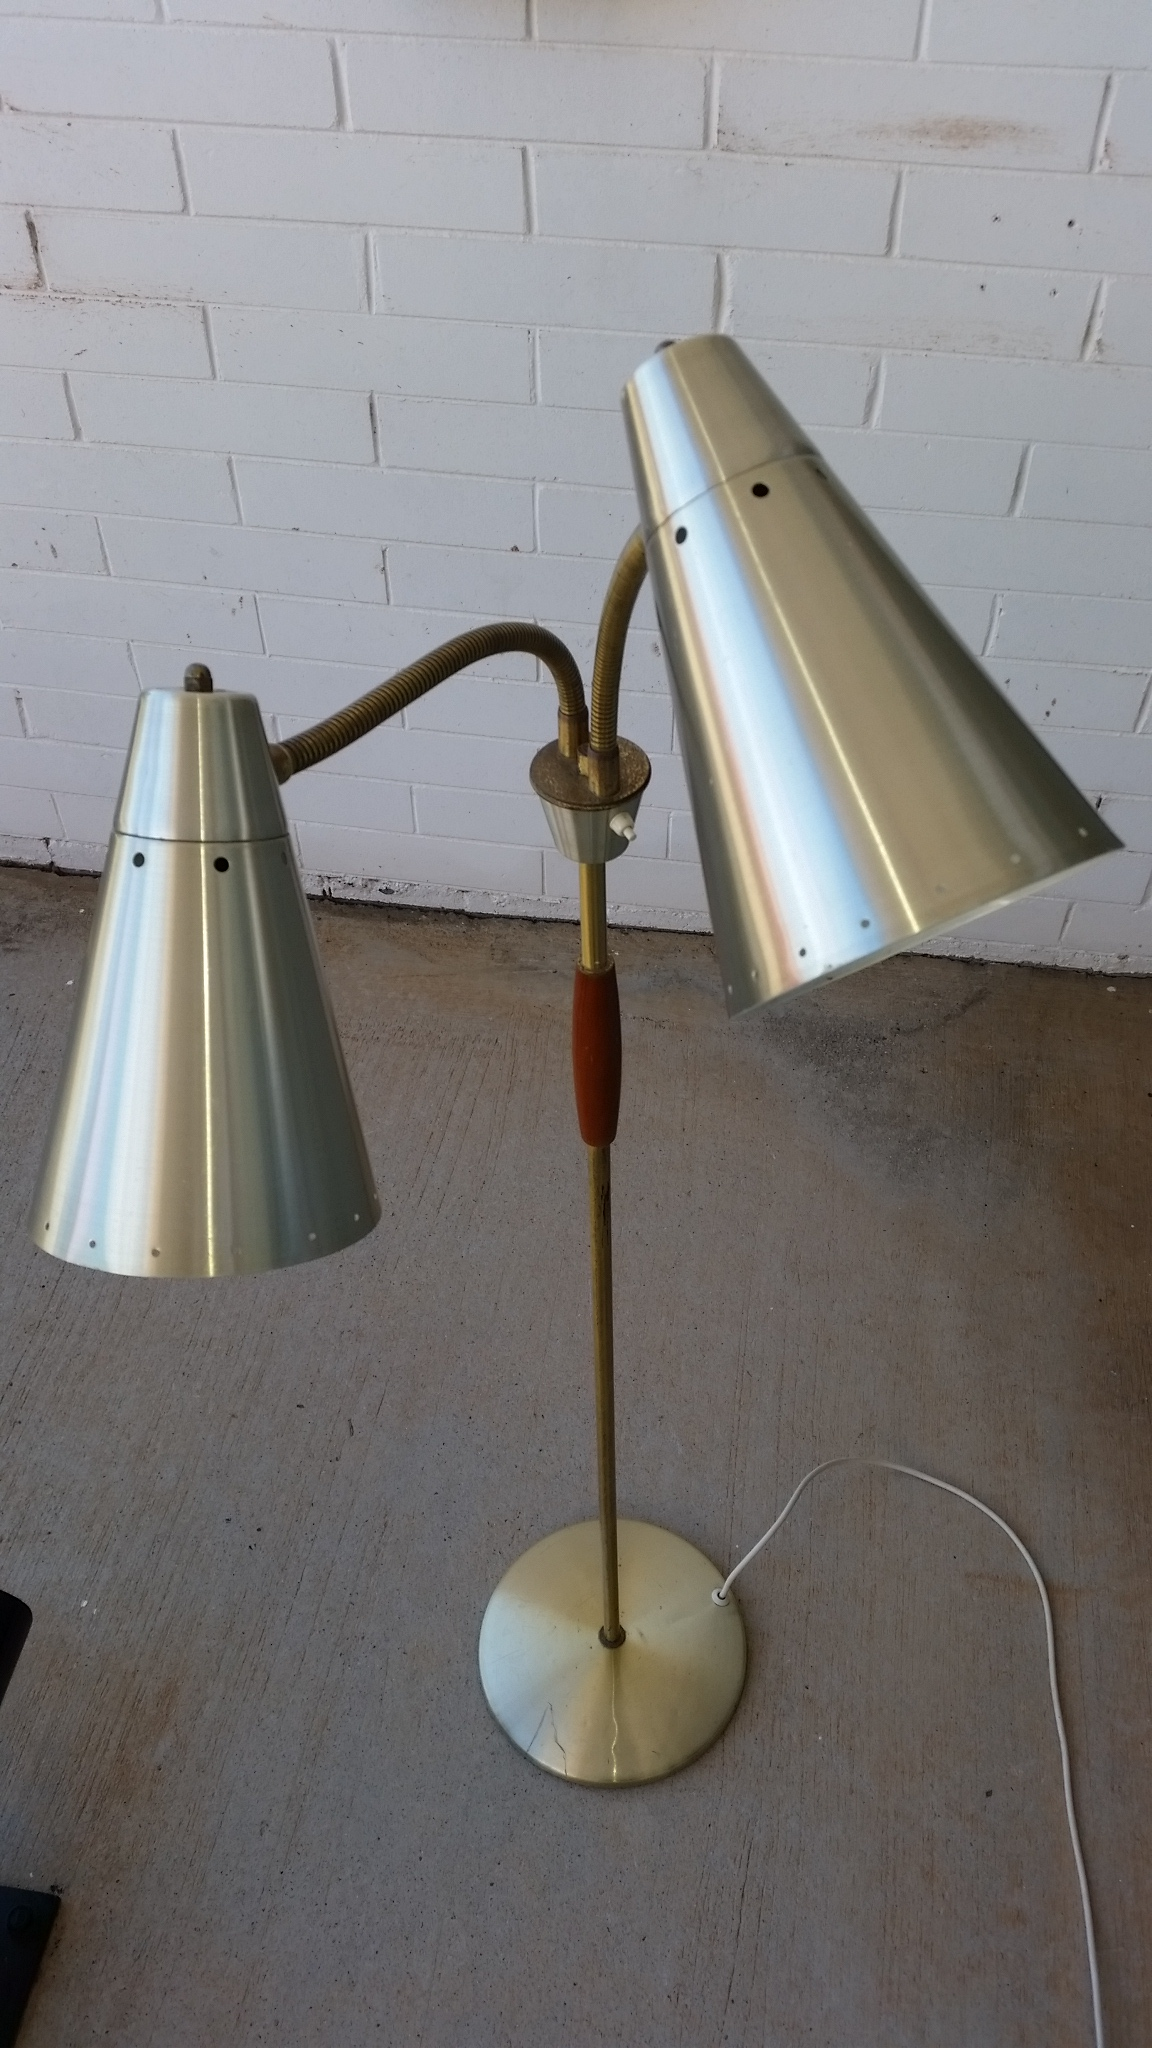 Sold Jet Age : c1960s twin head floor lamp May 2016 from jetage.com.au size 1152 x 2048 jpeg 783kB